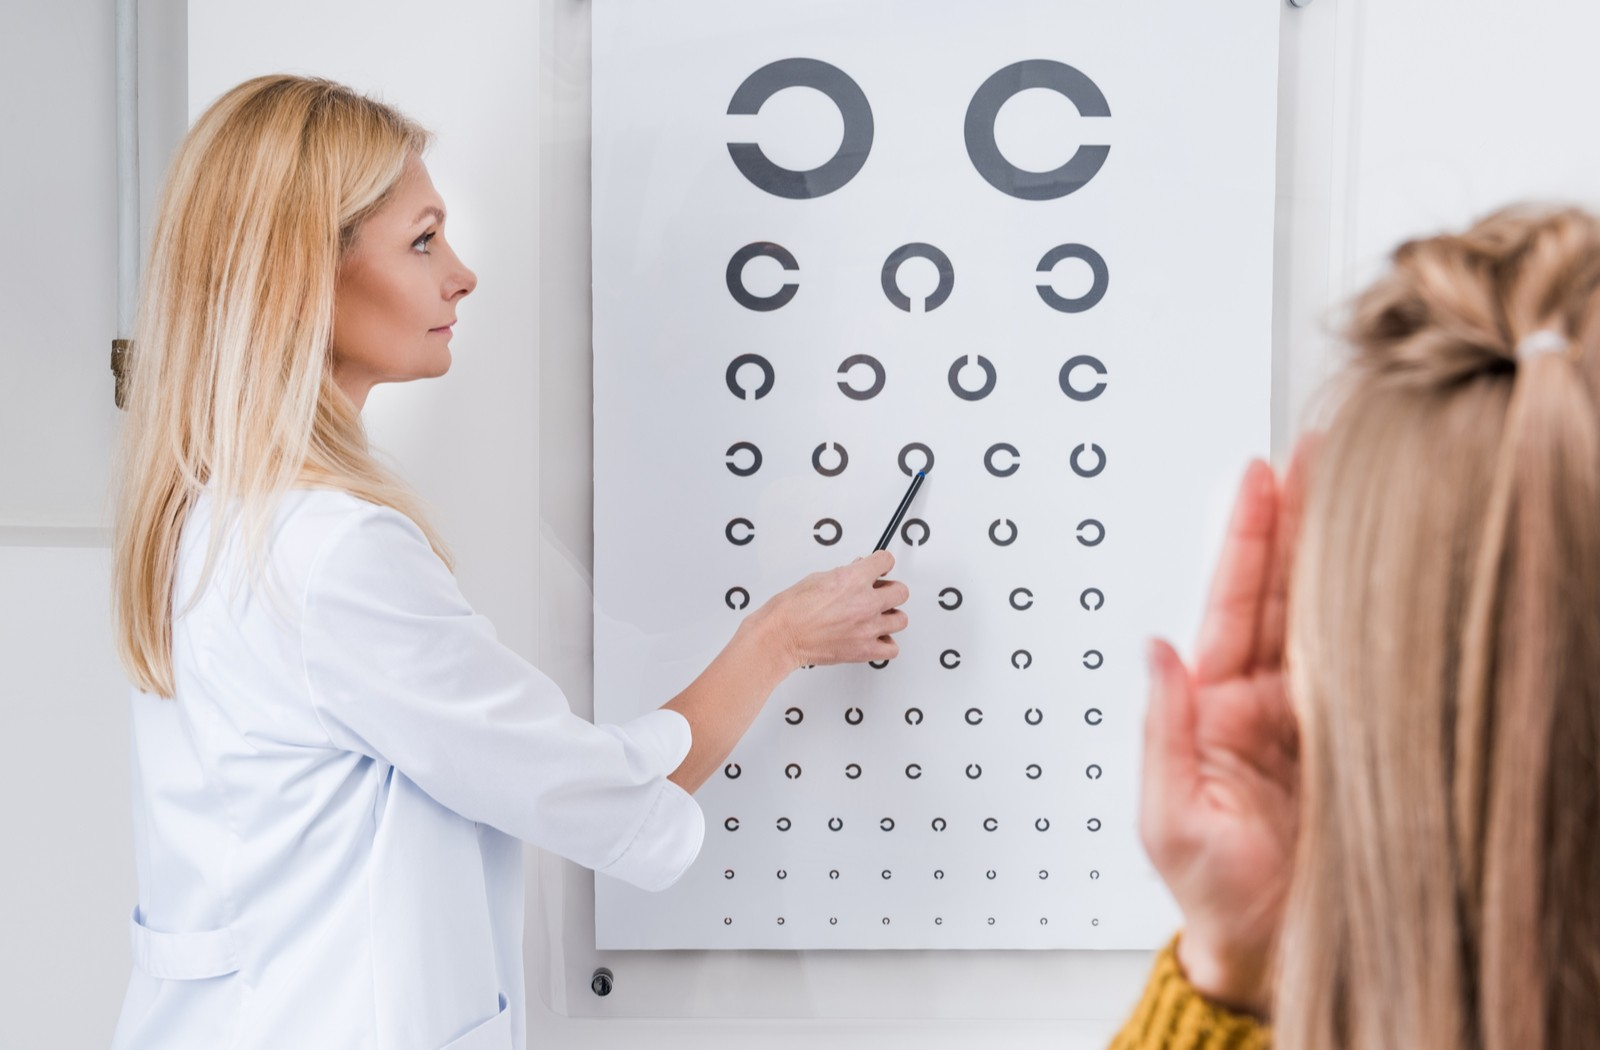 Middle aged female doctor points at an eye chart while female patient covers one eye and gazes at the chart in front of her